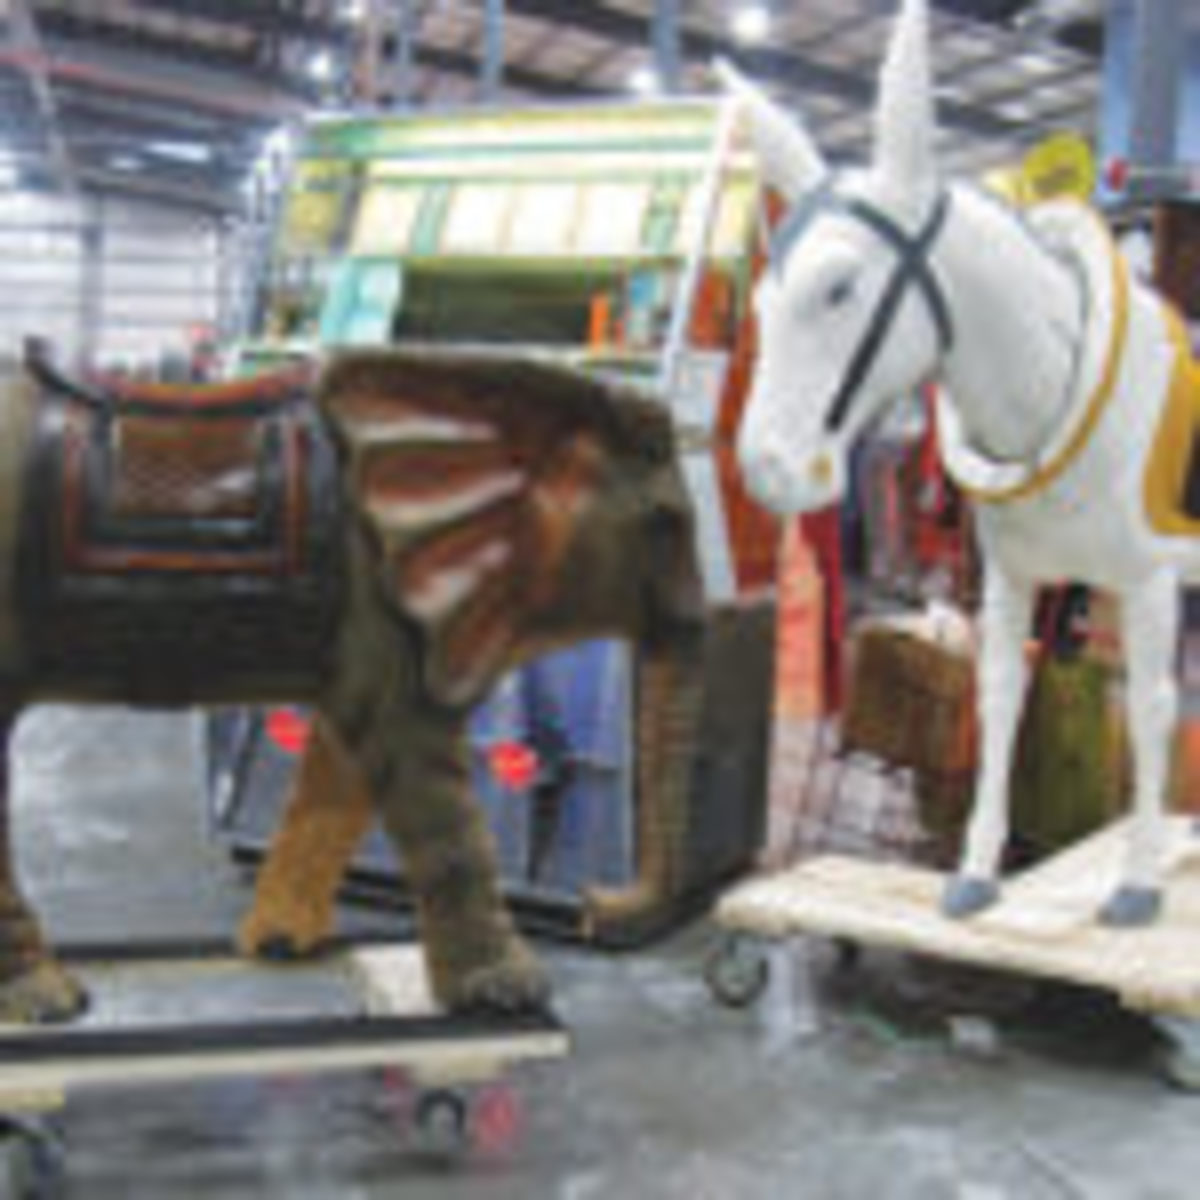 A full size hand carved wood baby elephant, priced at $850 appeared to be having a conversation with a full size carnival ride donkey, with bobbing head, priced at $3,995. The oddball pair was shown by Lee Godbey of Burton, Michigan.